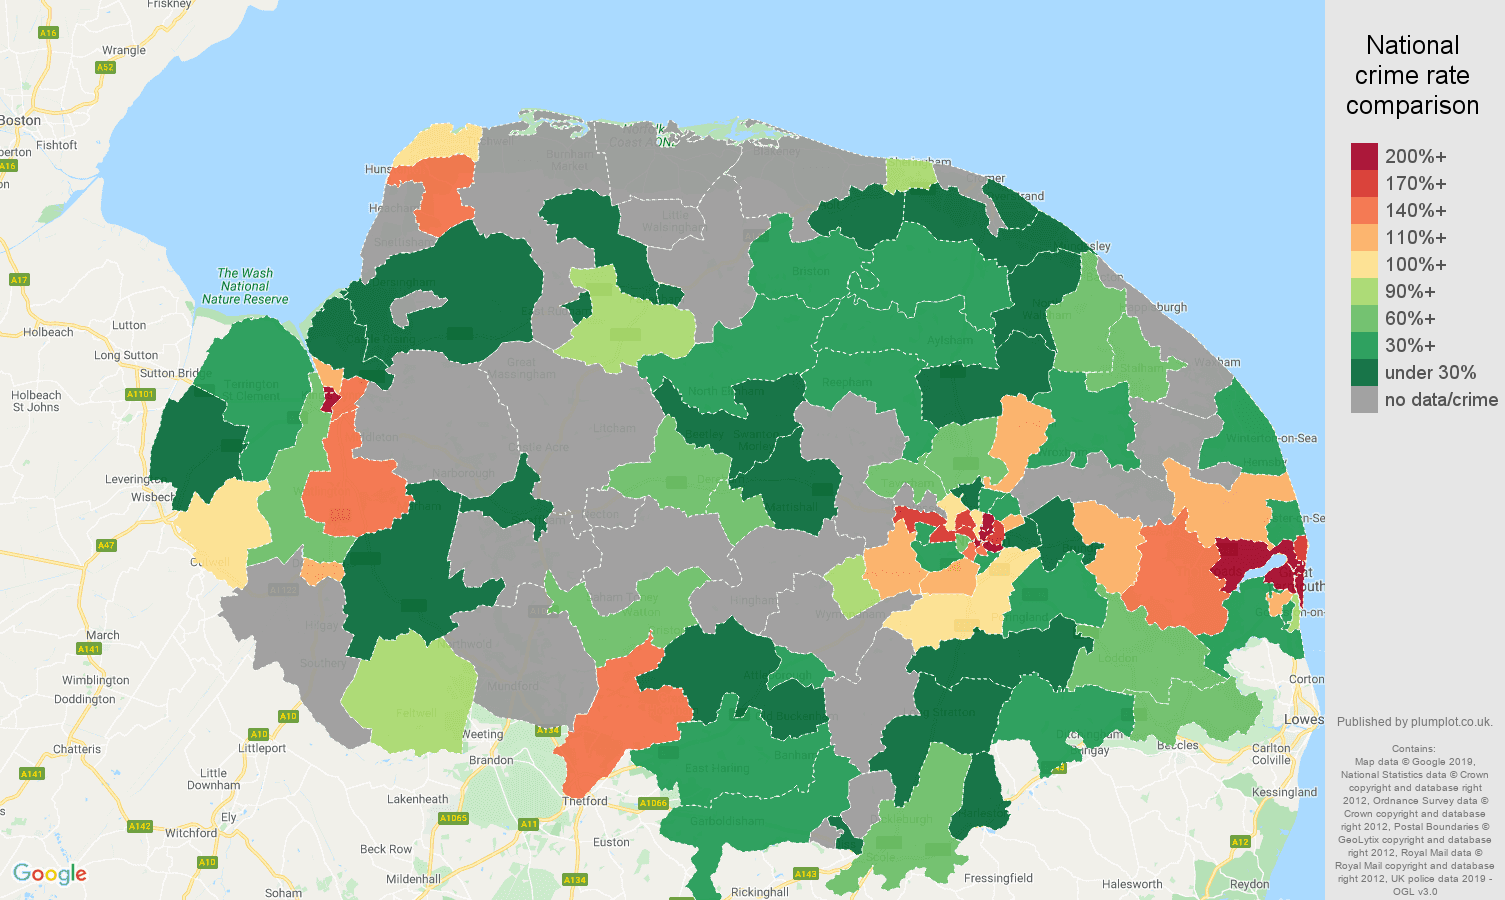 Norfolk possession of weapons crime rate comparison map